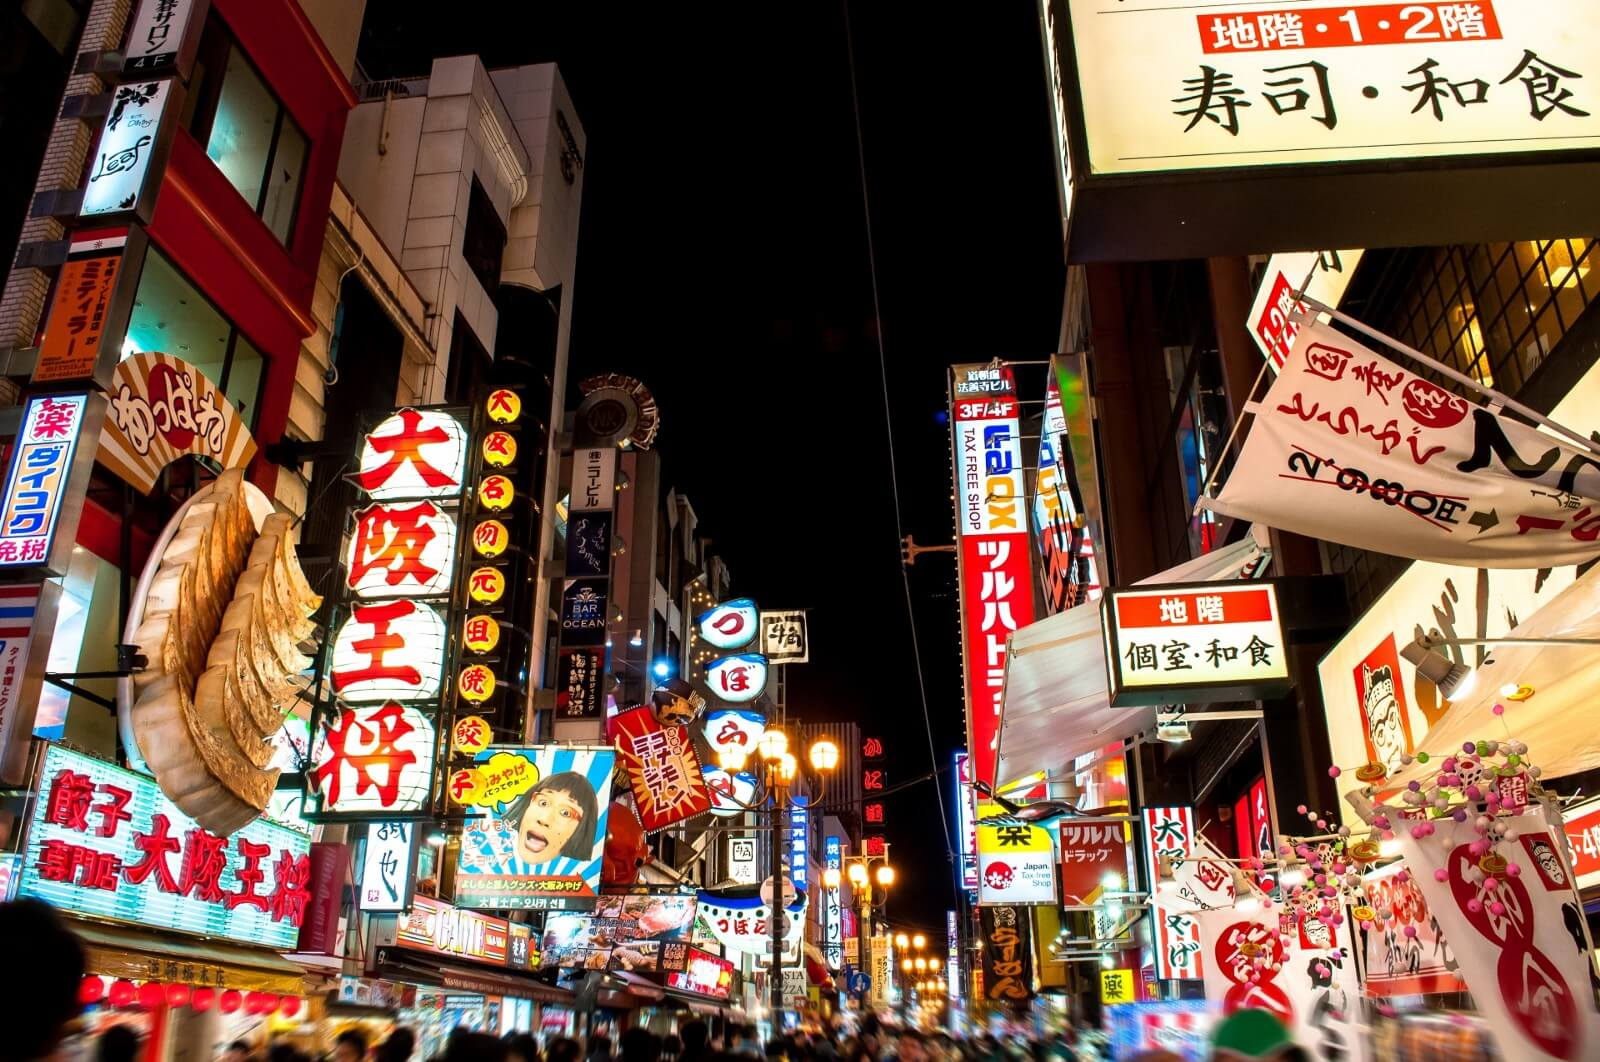 The bustling street of Dotonbori at night